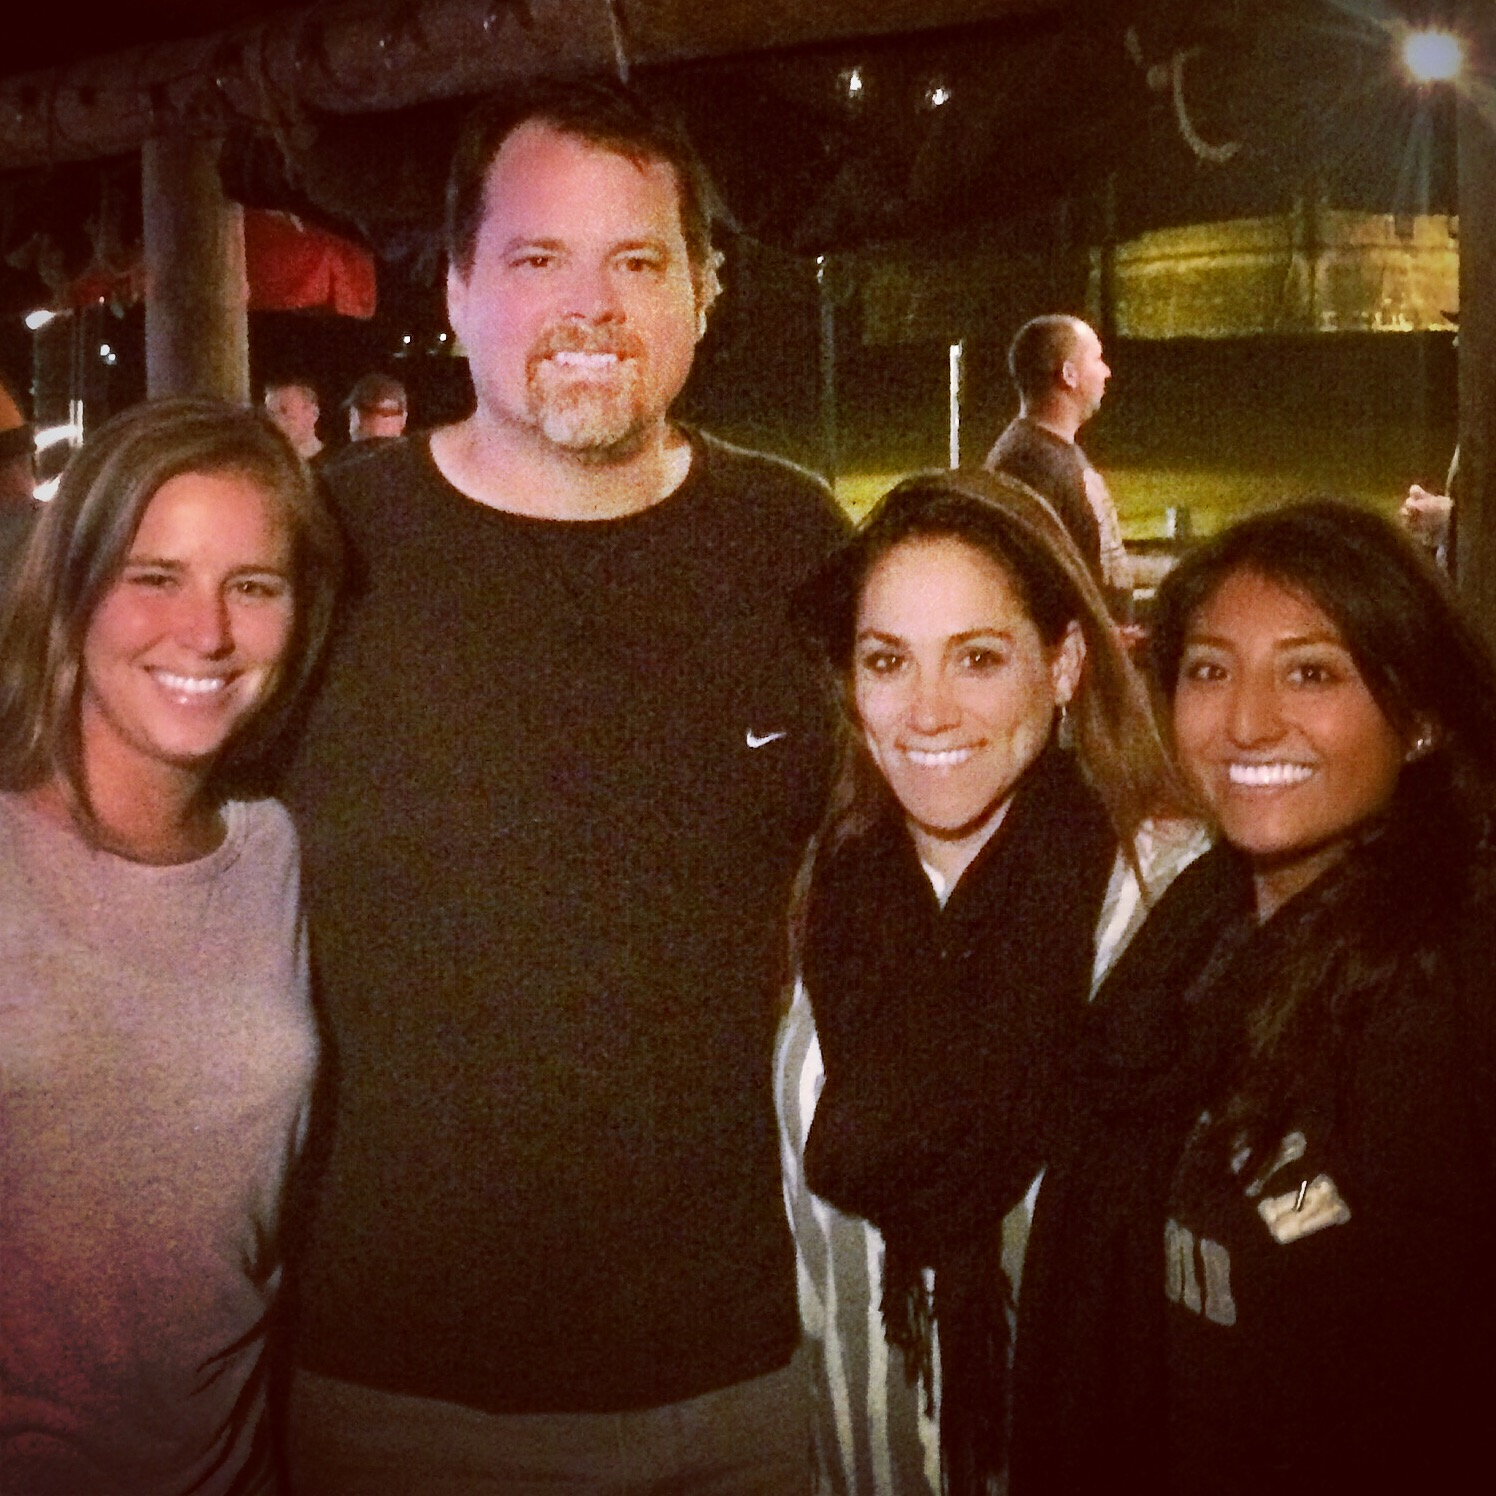 Aslyn Baringer, John Penney, Monica Munoz and Tania Alpizar in St. Augustine following a day of busy photo shooting.